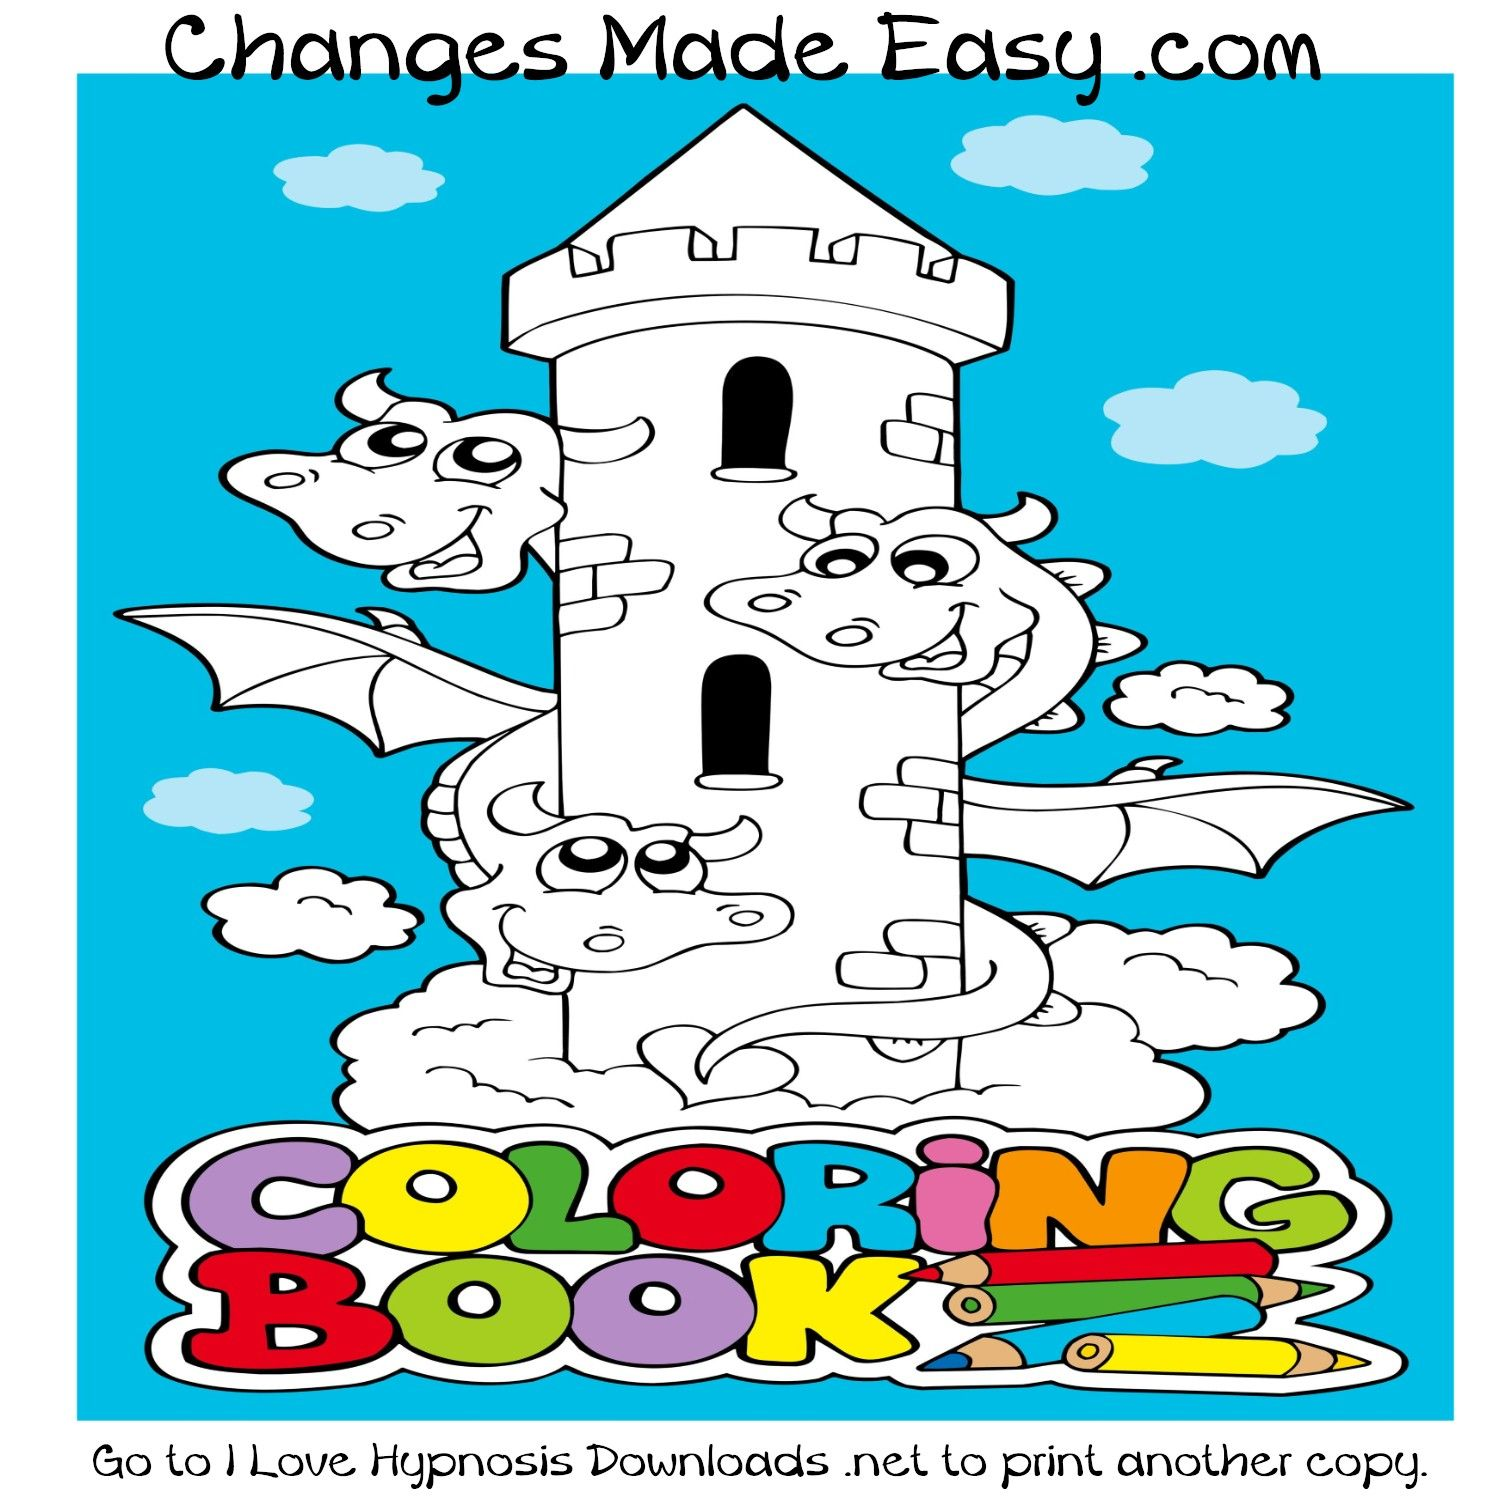 This Is A Free 40 Page Fantasy Coloring Book Compliments Of Changes Made Easy You Can Print The Whole Or Pick Pages Want To Do That